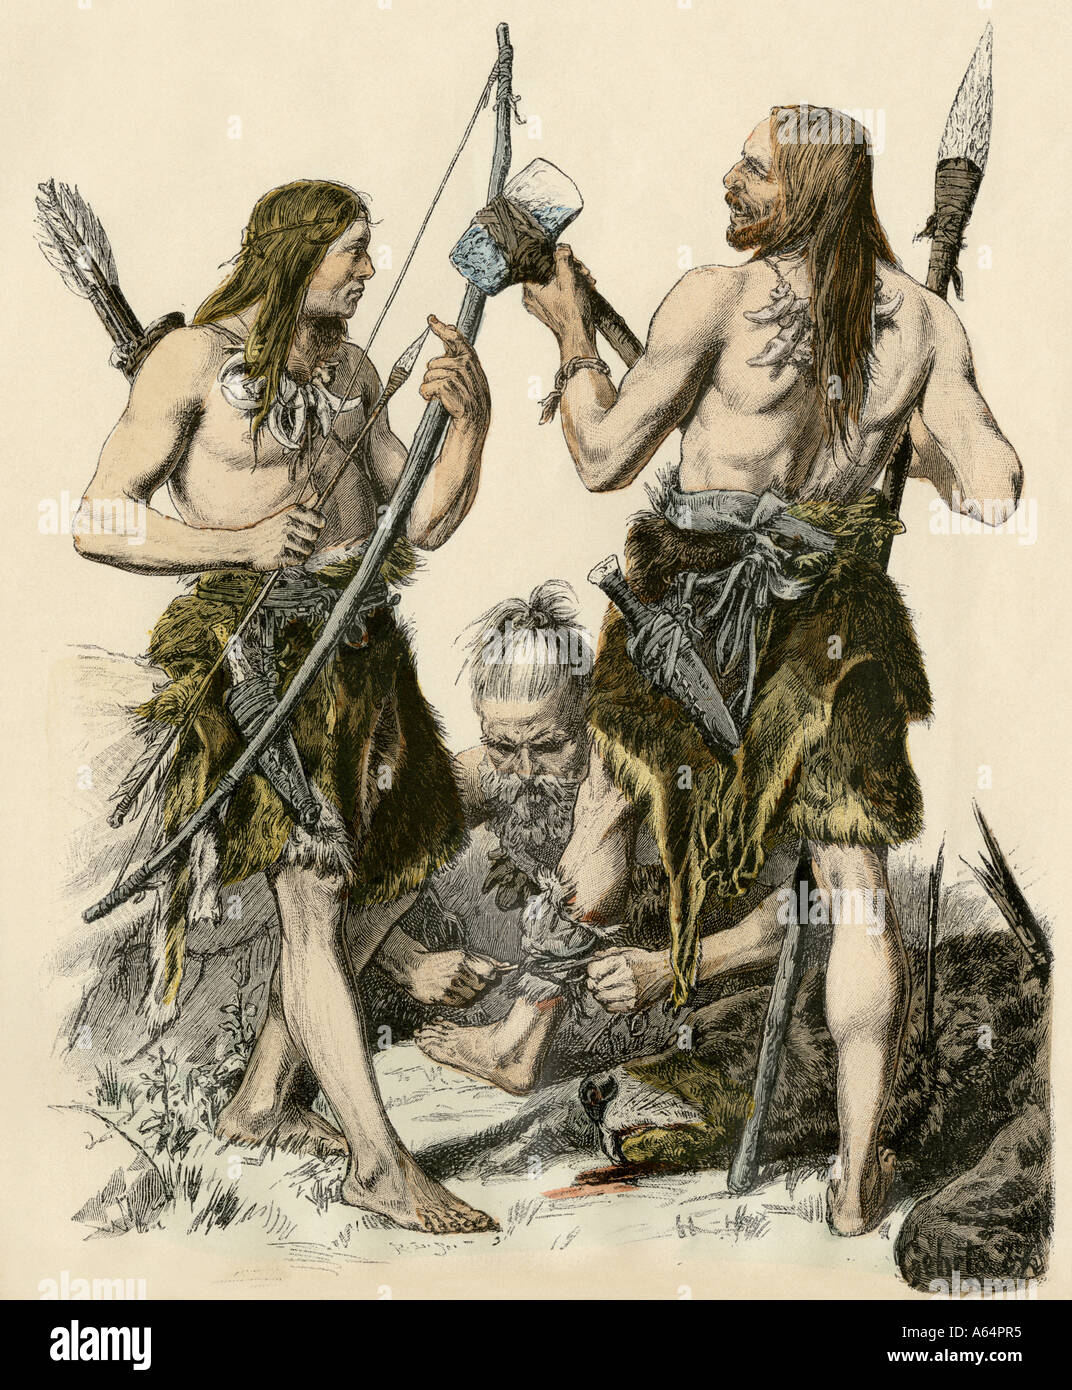 European hunters of the Stone Age. Hand-colored print - Stock Image